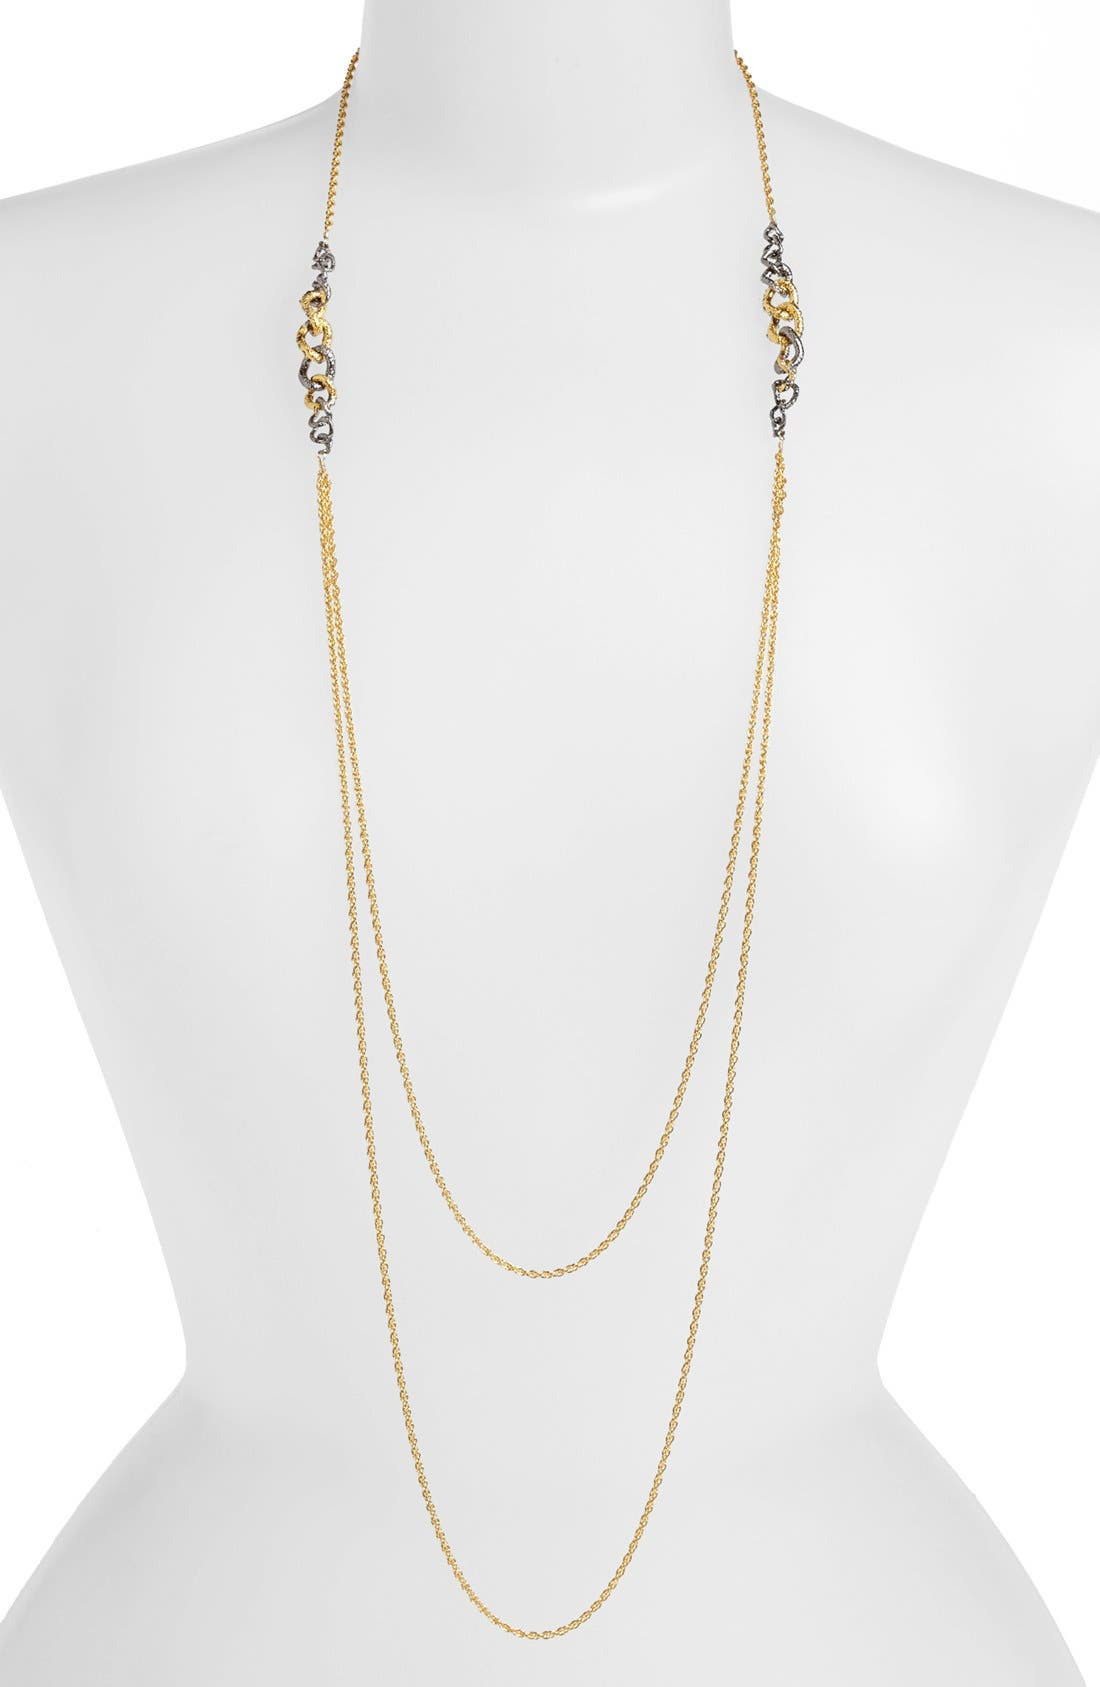 Main Image - Alexis Bittar 'Elements - Jardin de Papillon' Long Link Station Necklace (Nordstrom Exclusive)